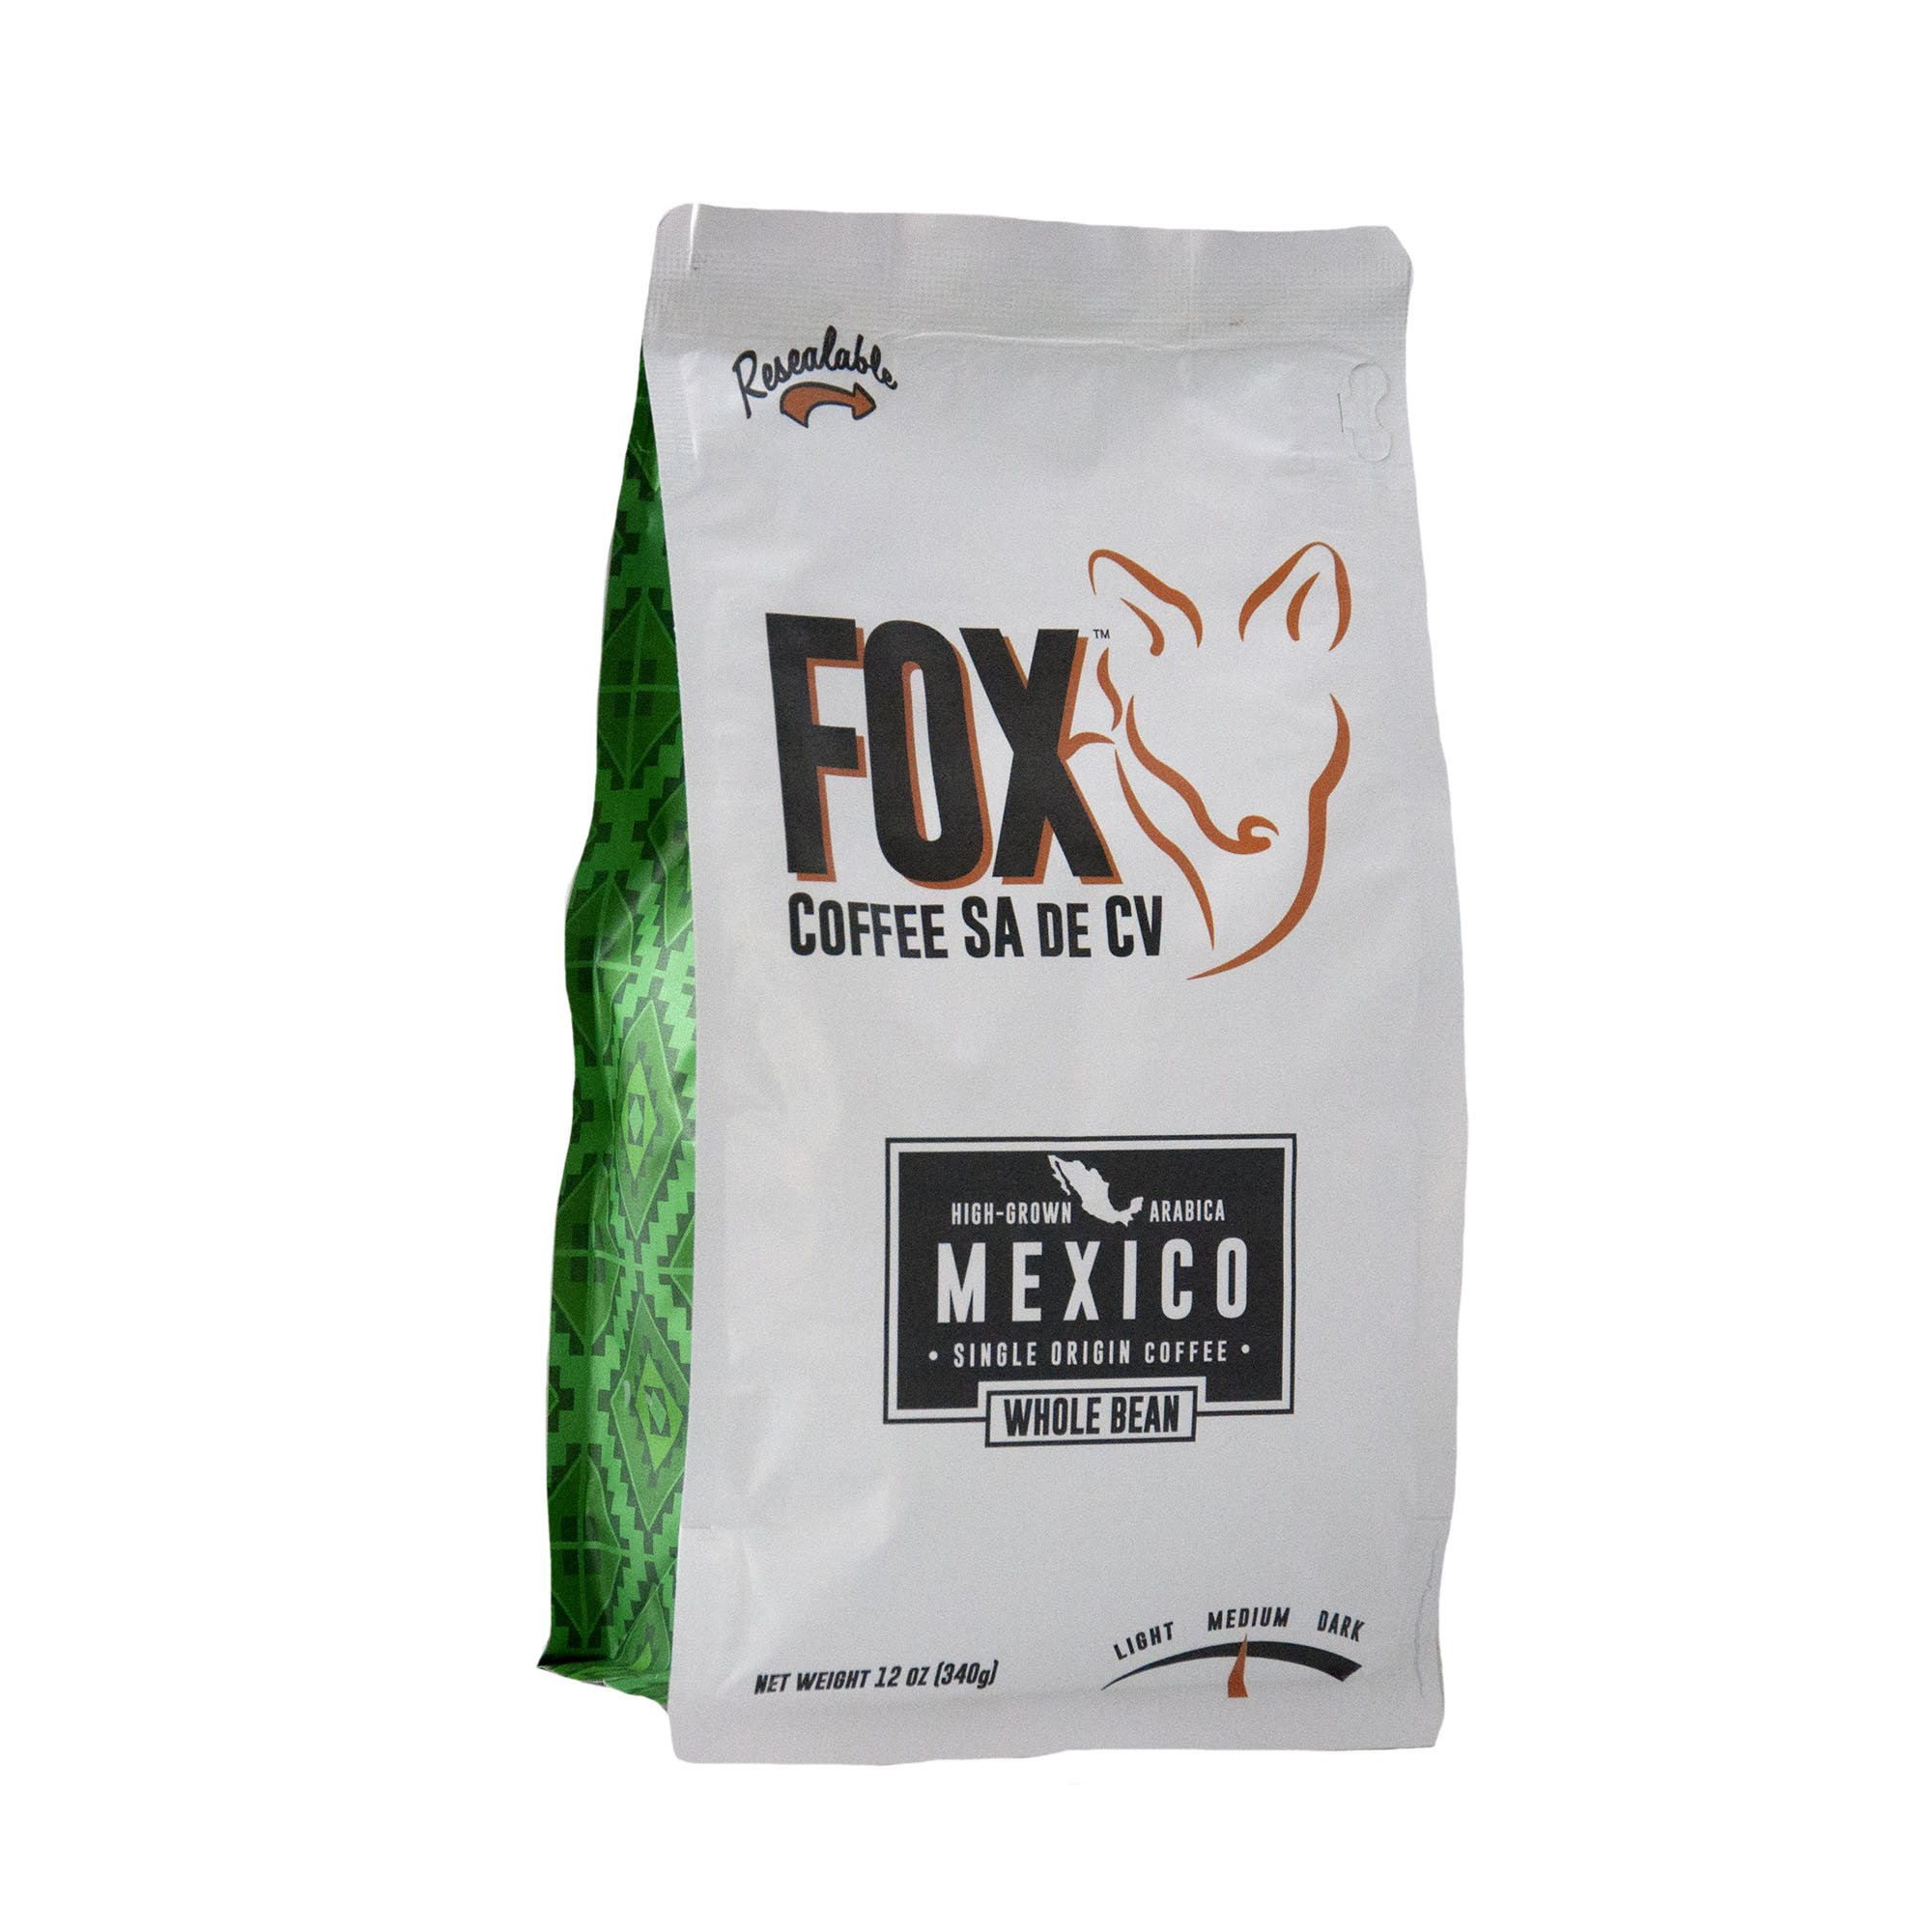 Fox Coffee Whole Bean Medium Roast, 12 ounce bag, Gourmet Coffee